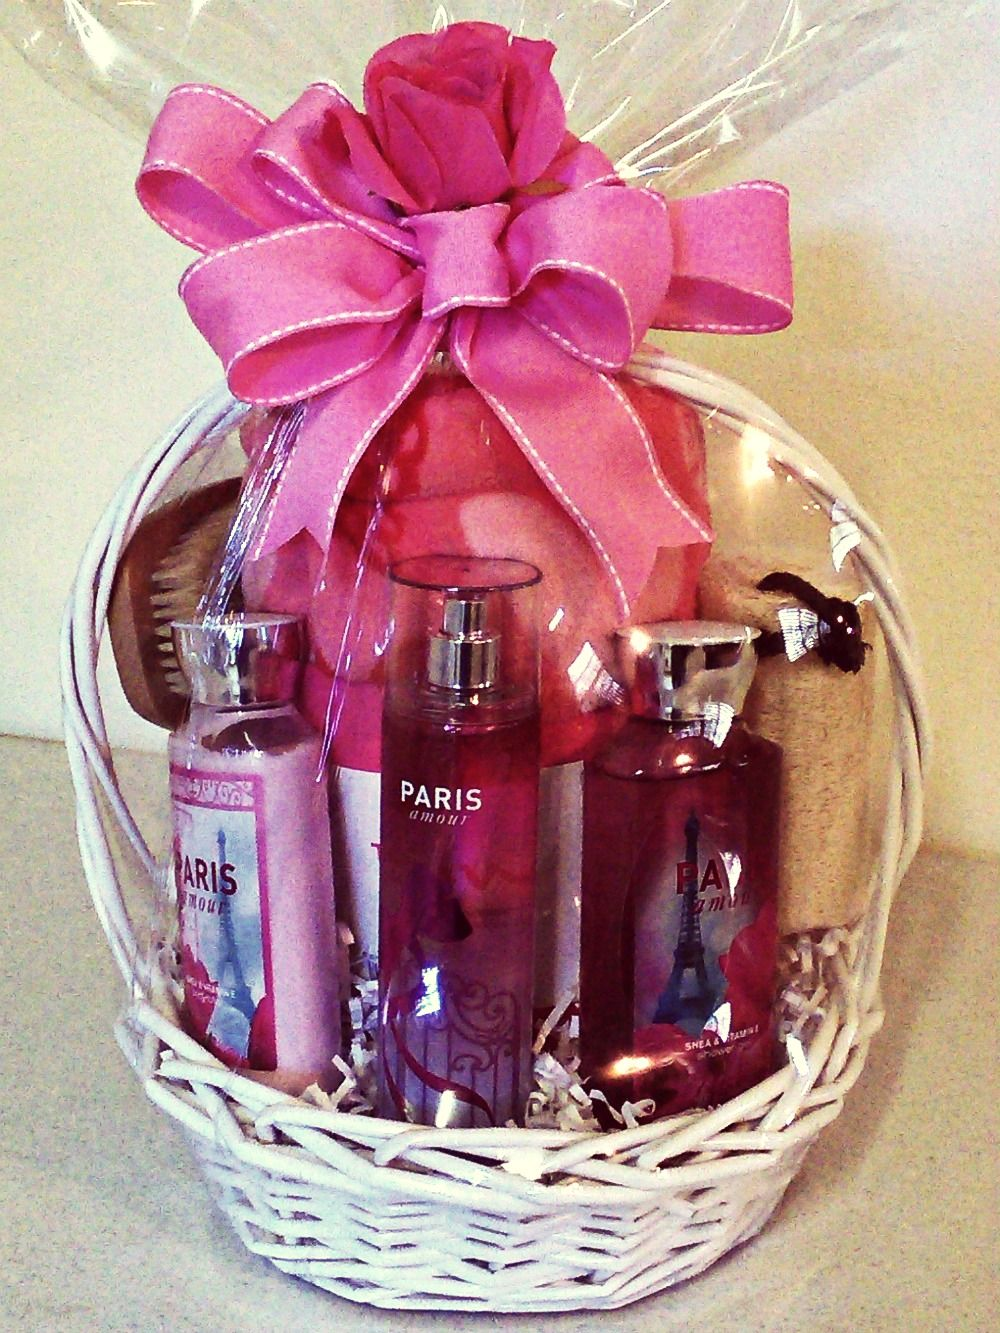 scentsational paris bath body works spa themed gift basket complete with a comfy - Valentines Day Gift Basket Ideas